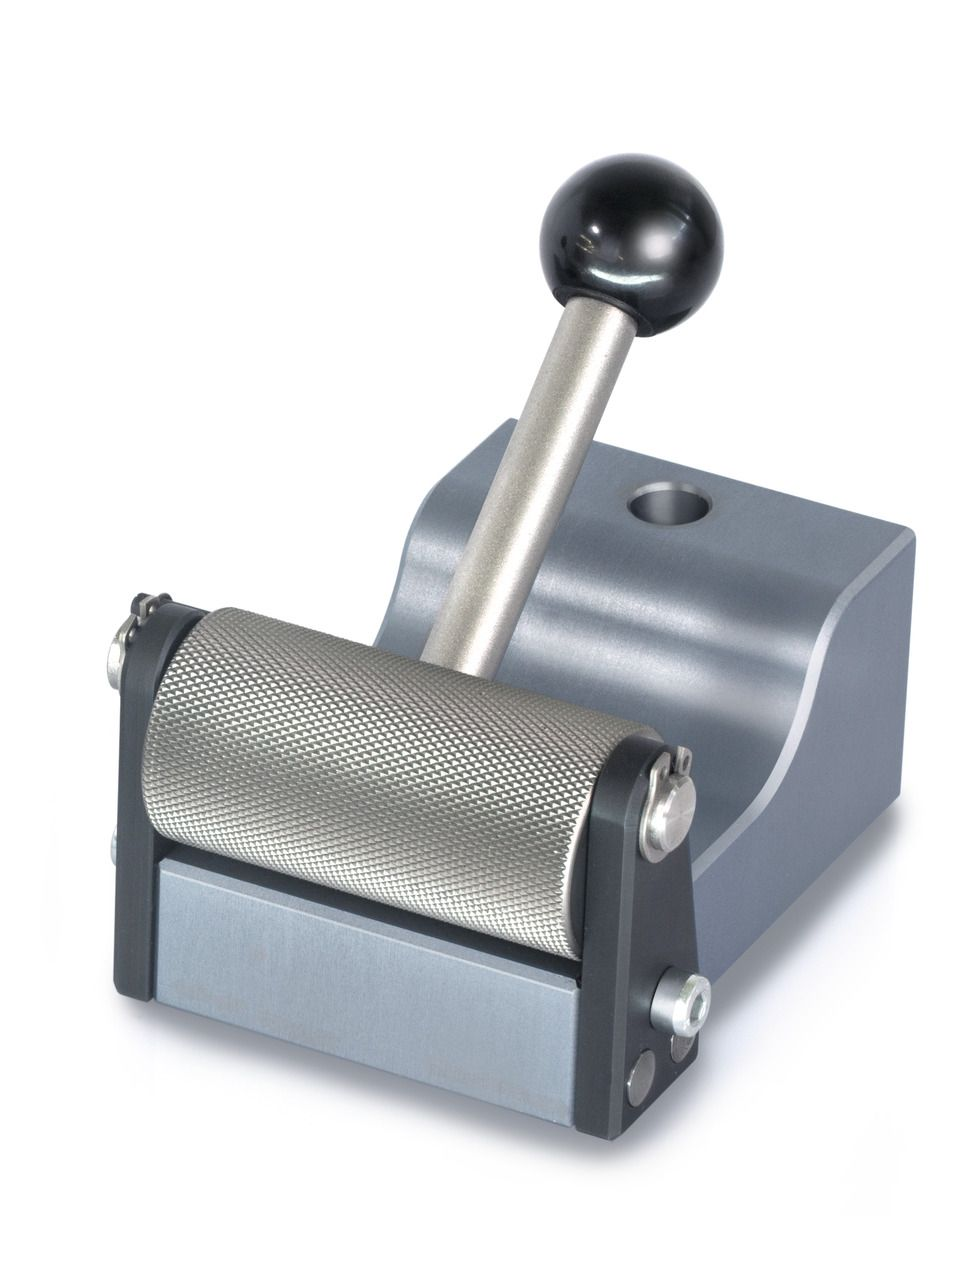 AD 9207 Roller Tension Clamp